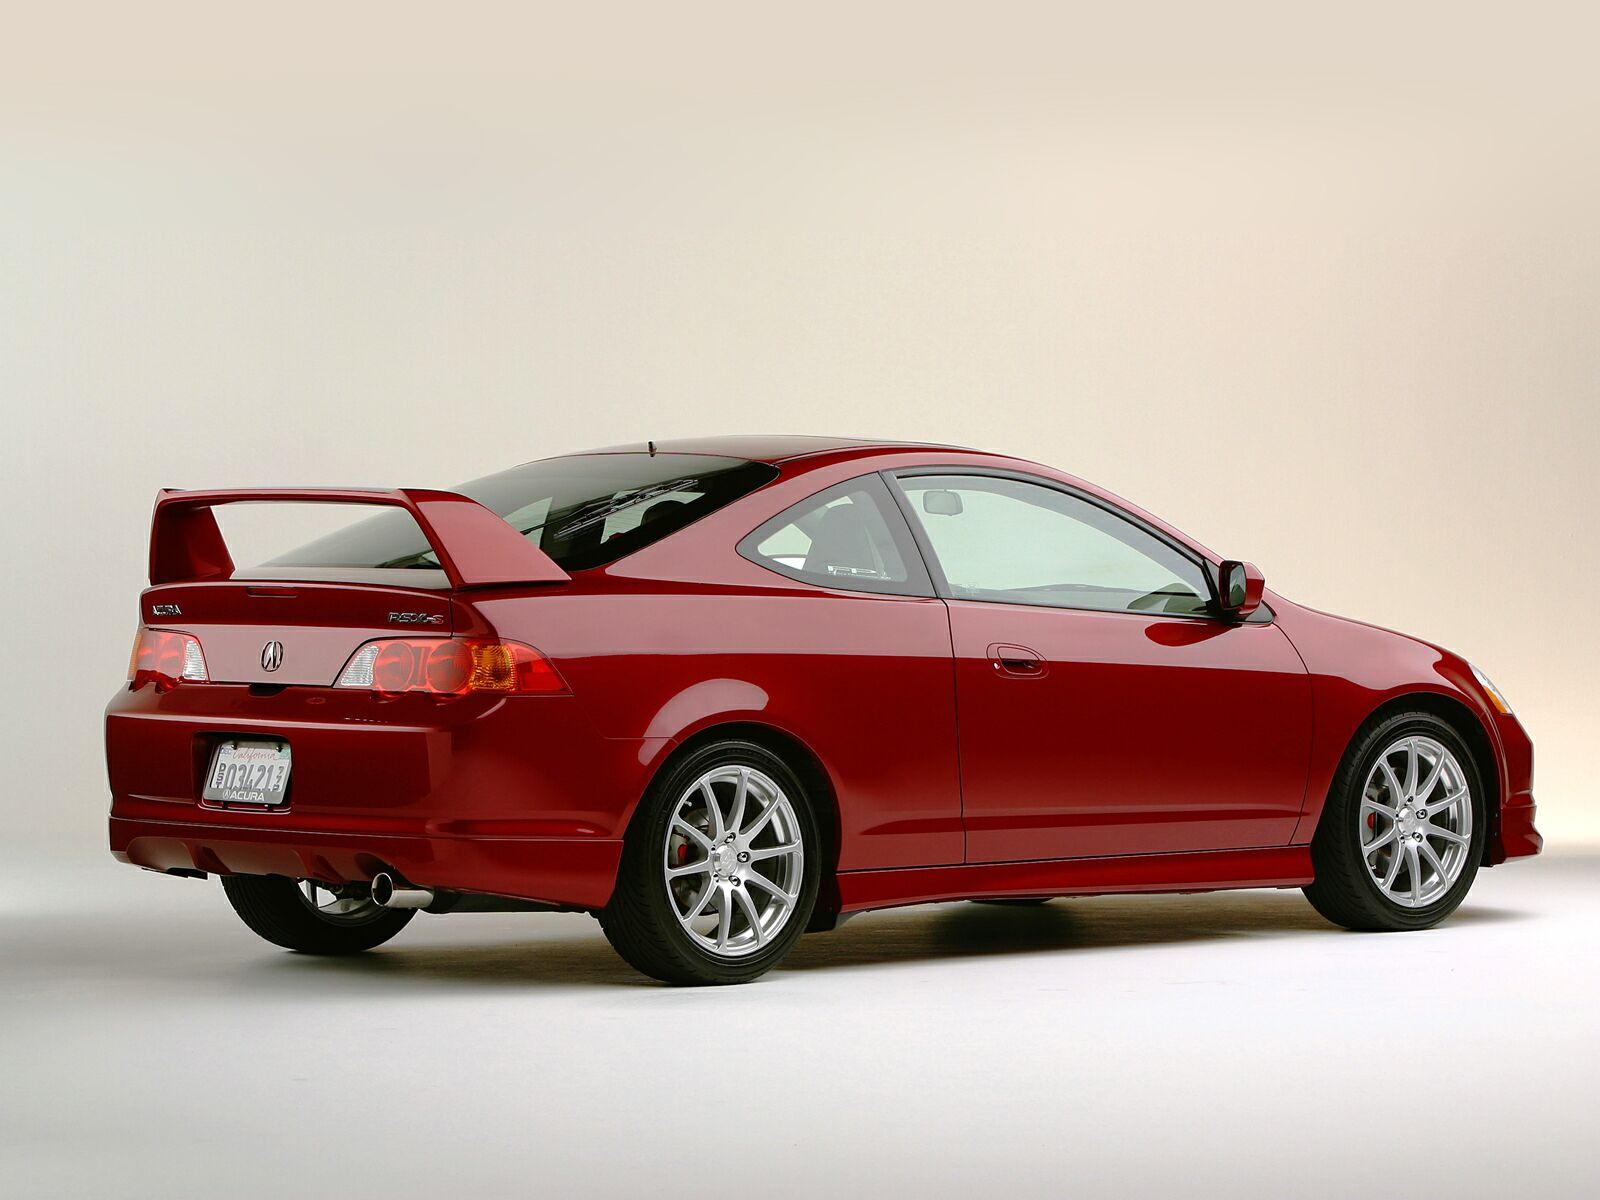 acura rsx images #6